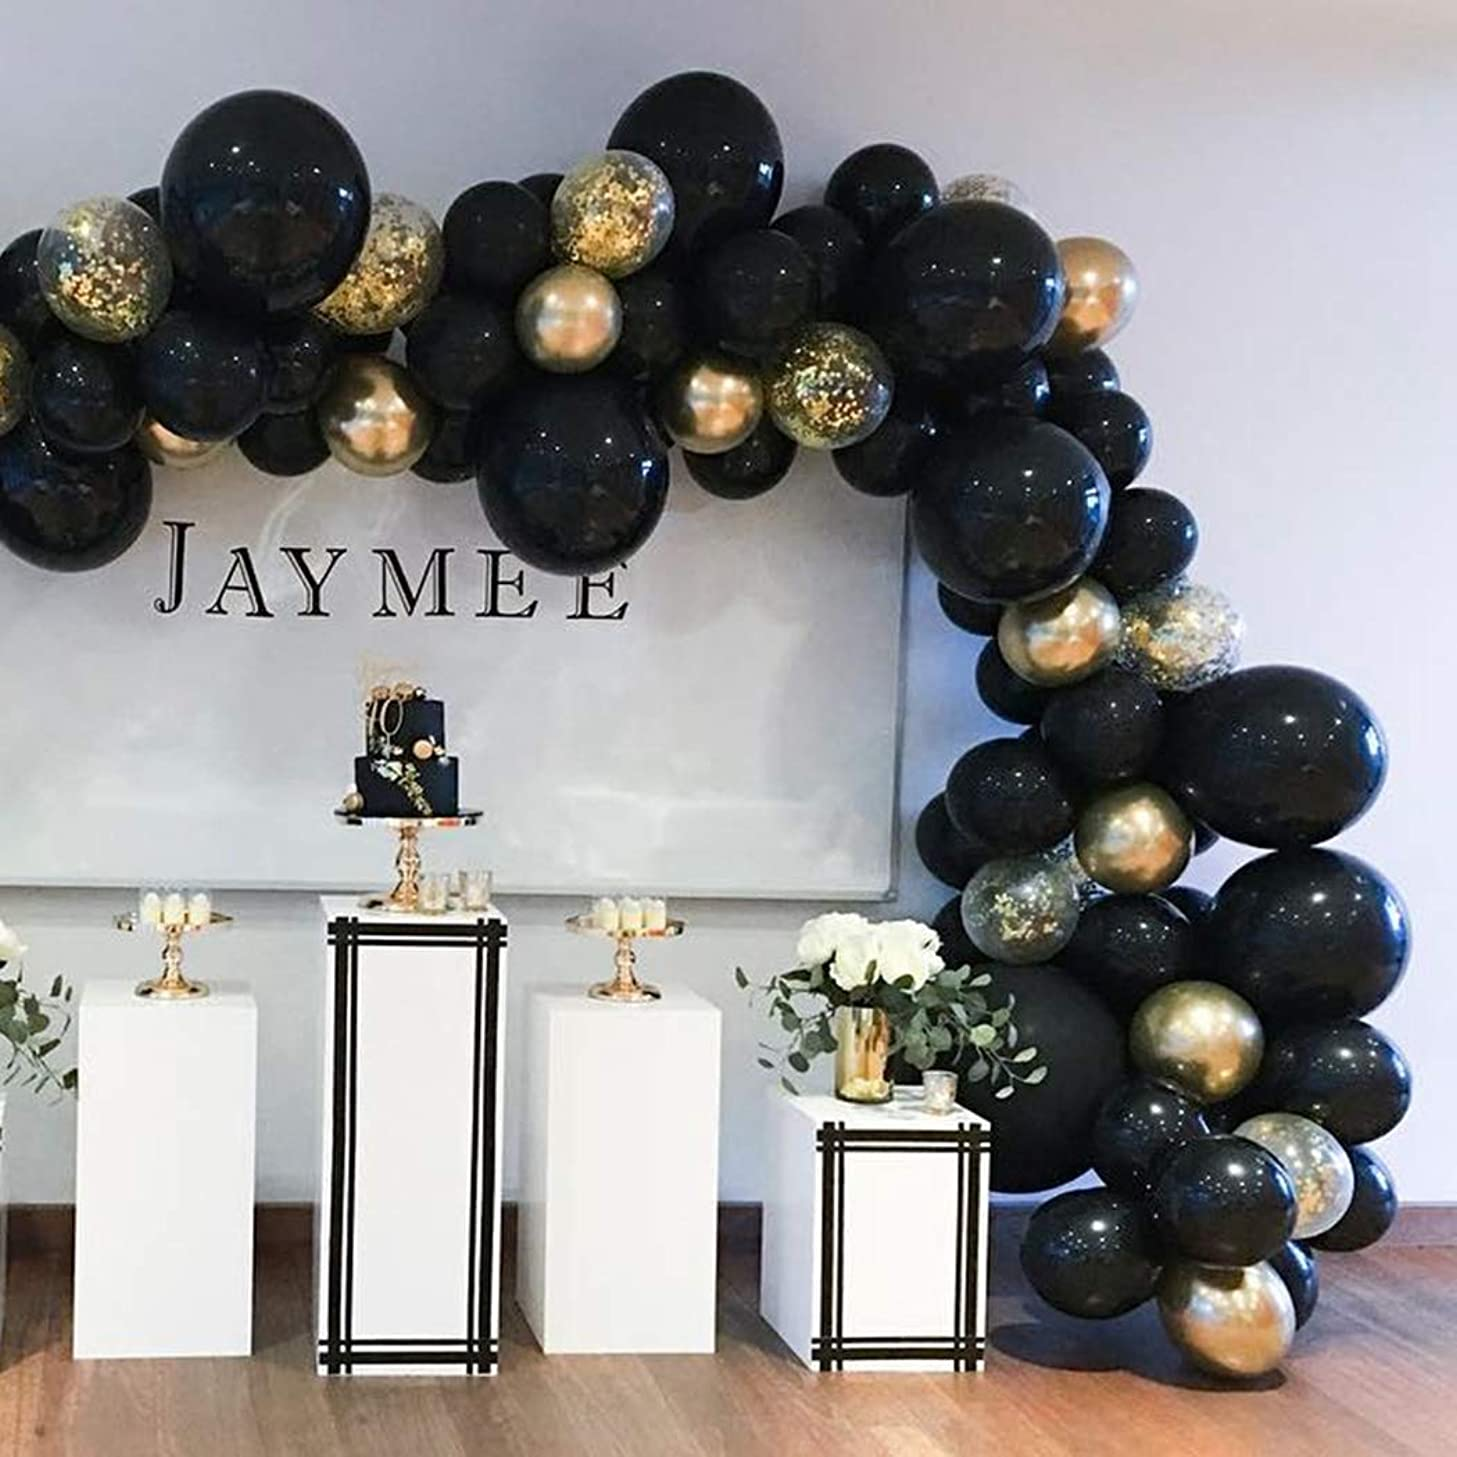 Beaumode DIY Black&Gold Balloon Garland Kit For 82pcs Black Balloons Arch Garland Banner Boys Birthday Bachelorette Wedding Decor Photo Booth Backdrop Bridal Shower Baby Shower Birthday Party Anniversary Party Decoration